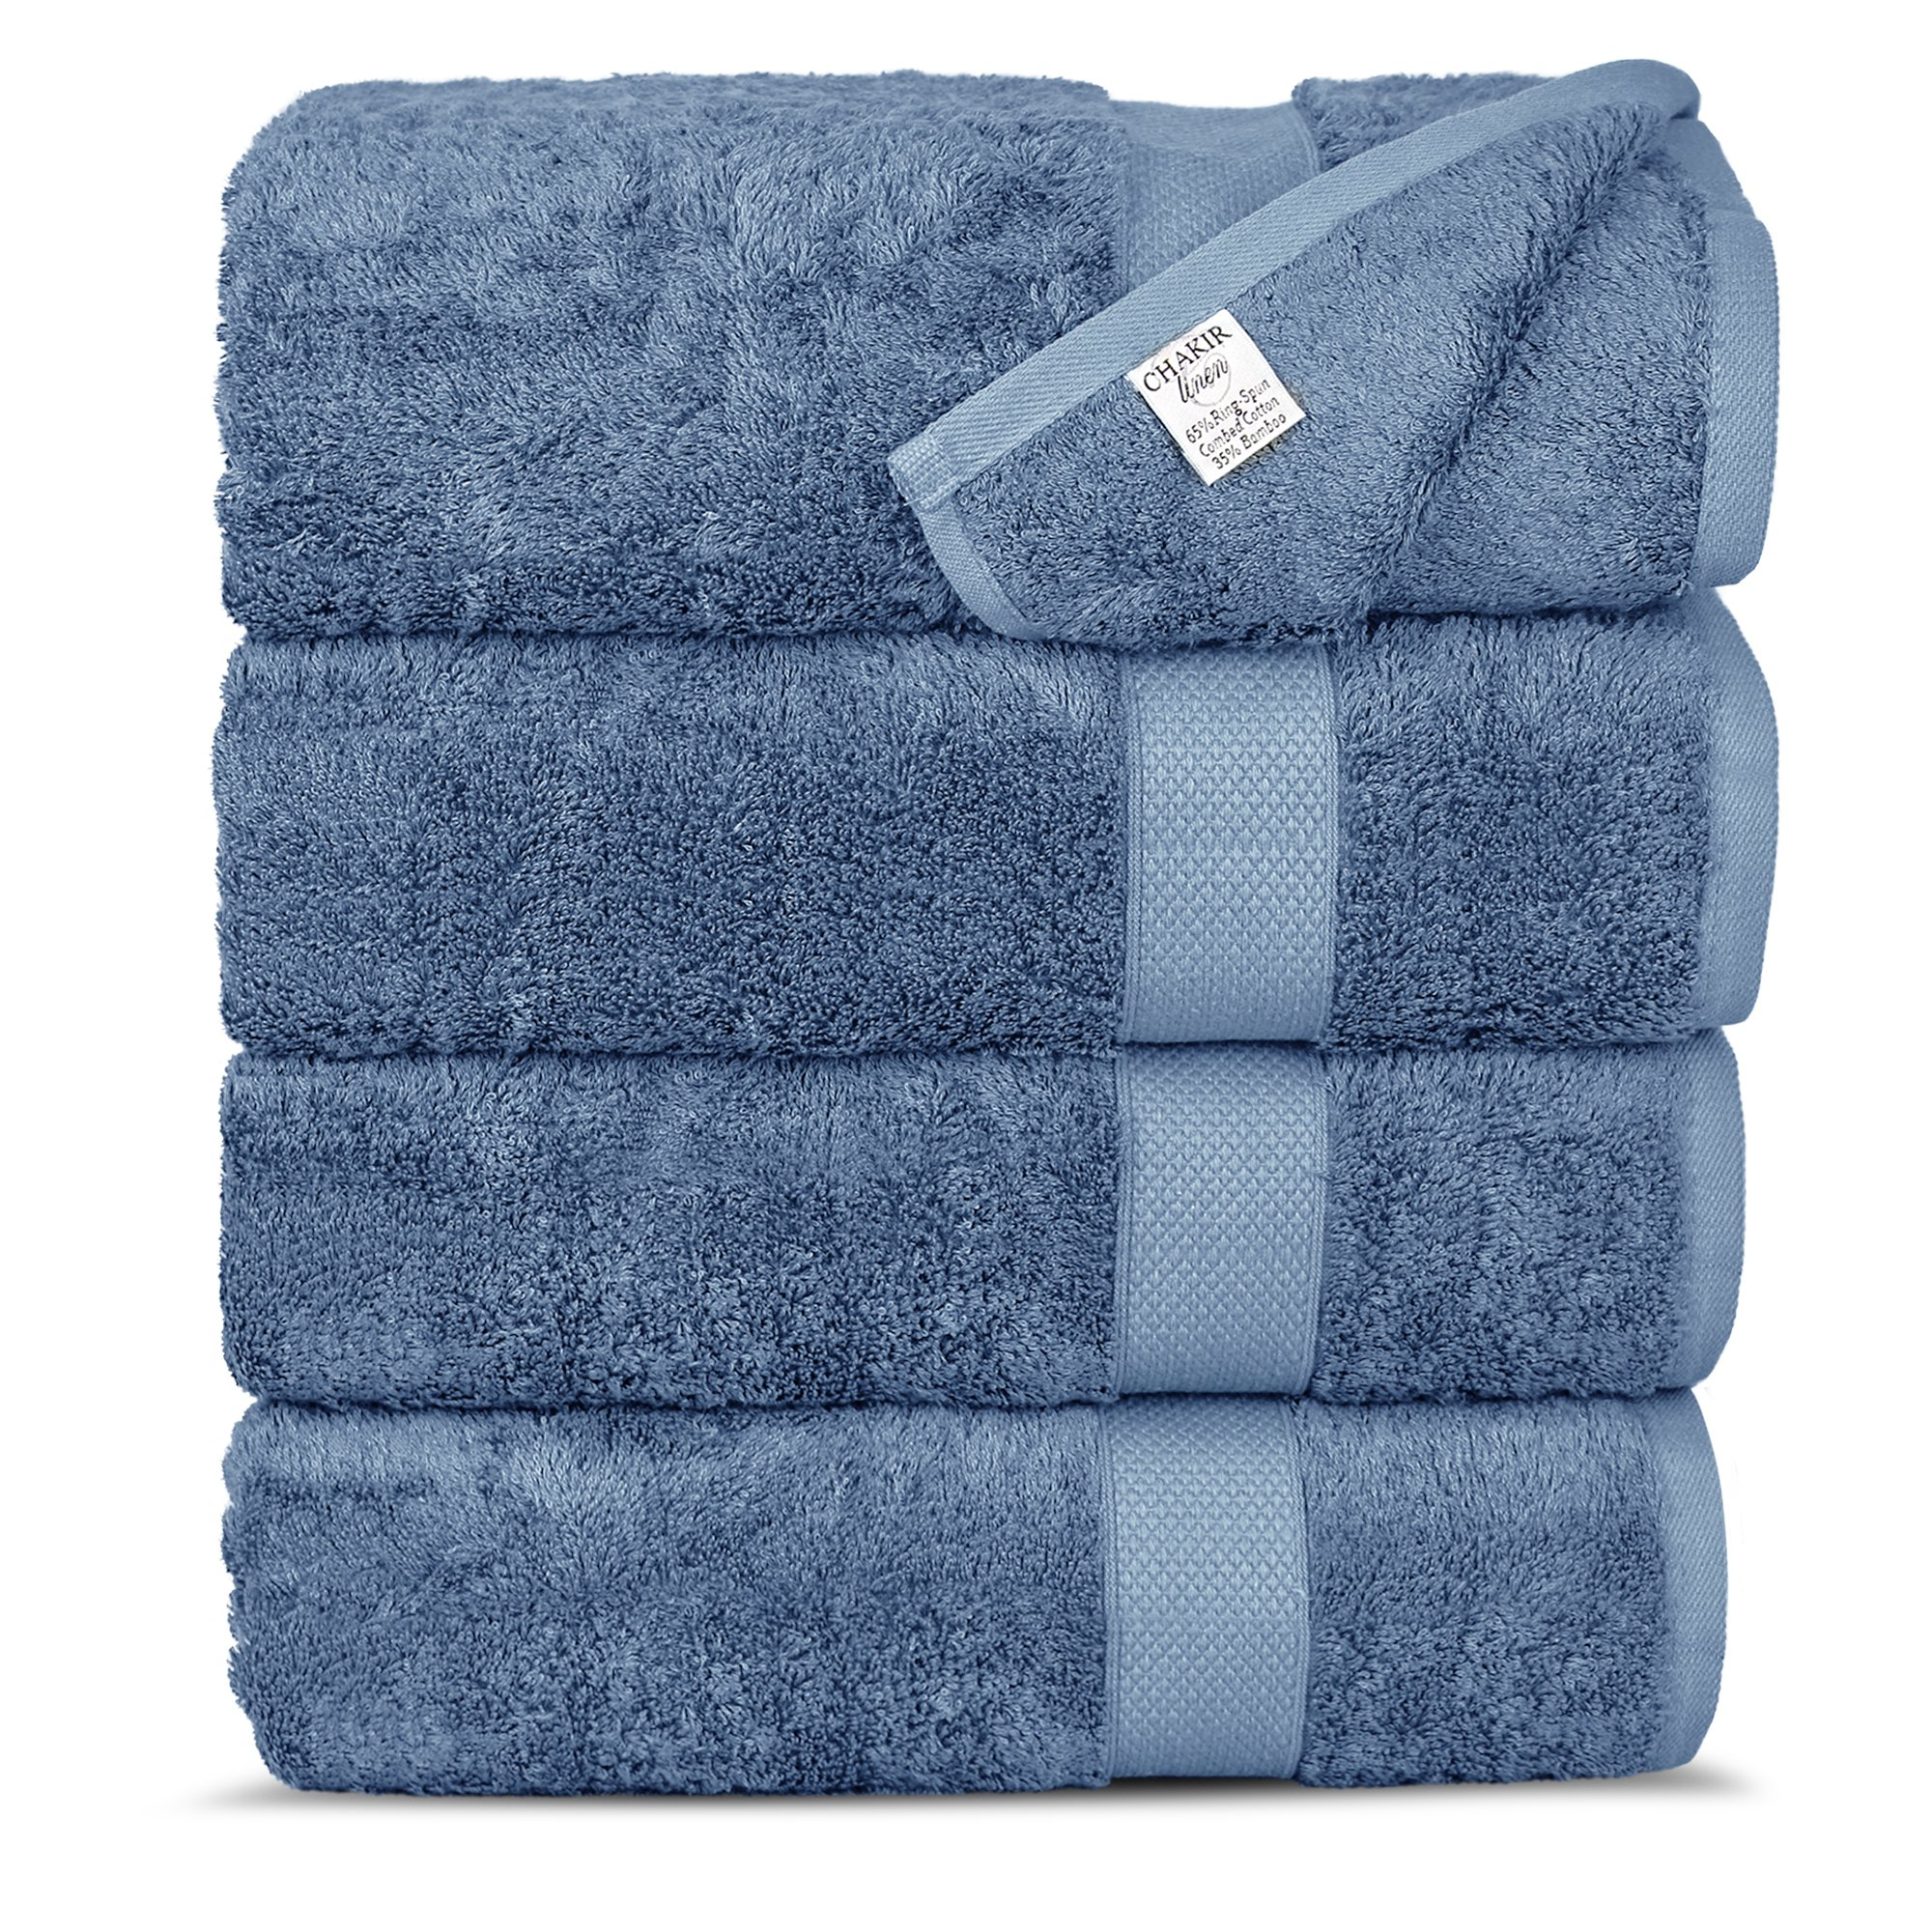 Chakir Turkish Linens Luxury Ultra Soft Bamboo 4-Piece Bath Towel Set - Soft, Absorbent and Eco-Friendly (Wedgewood)